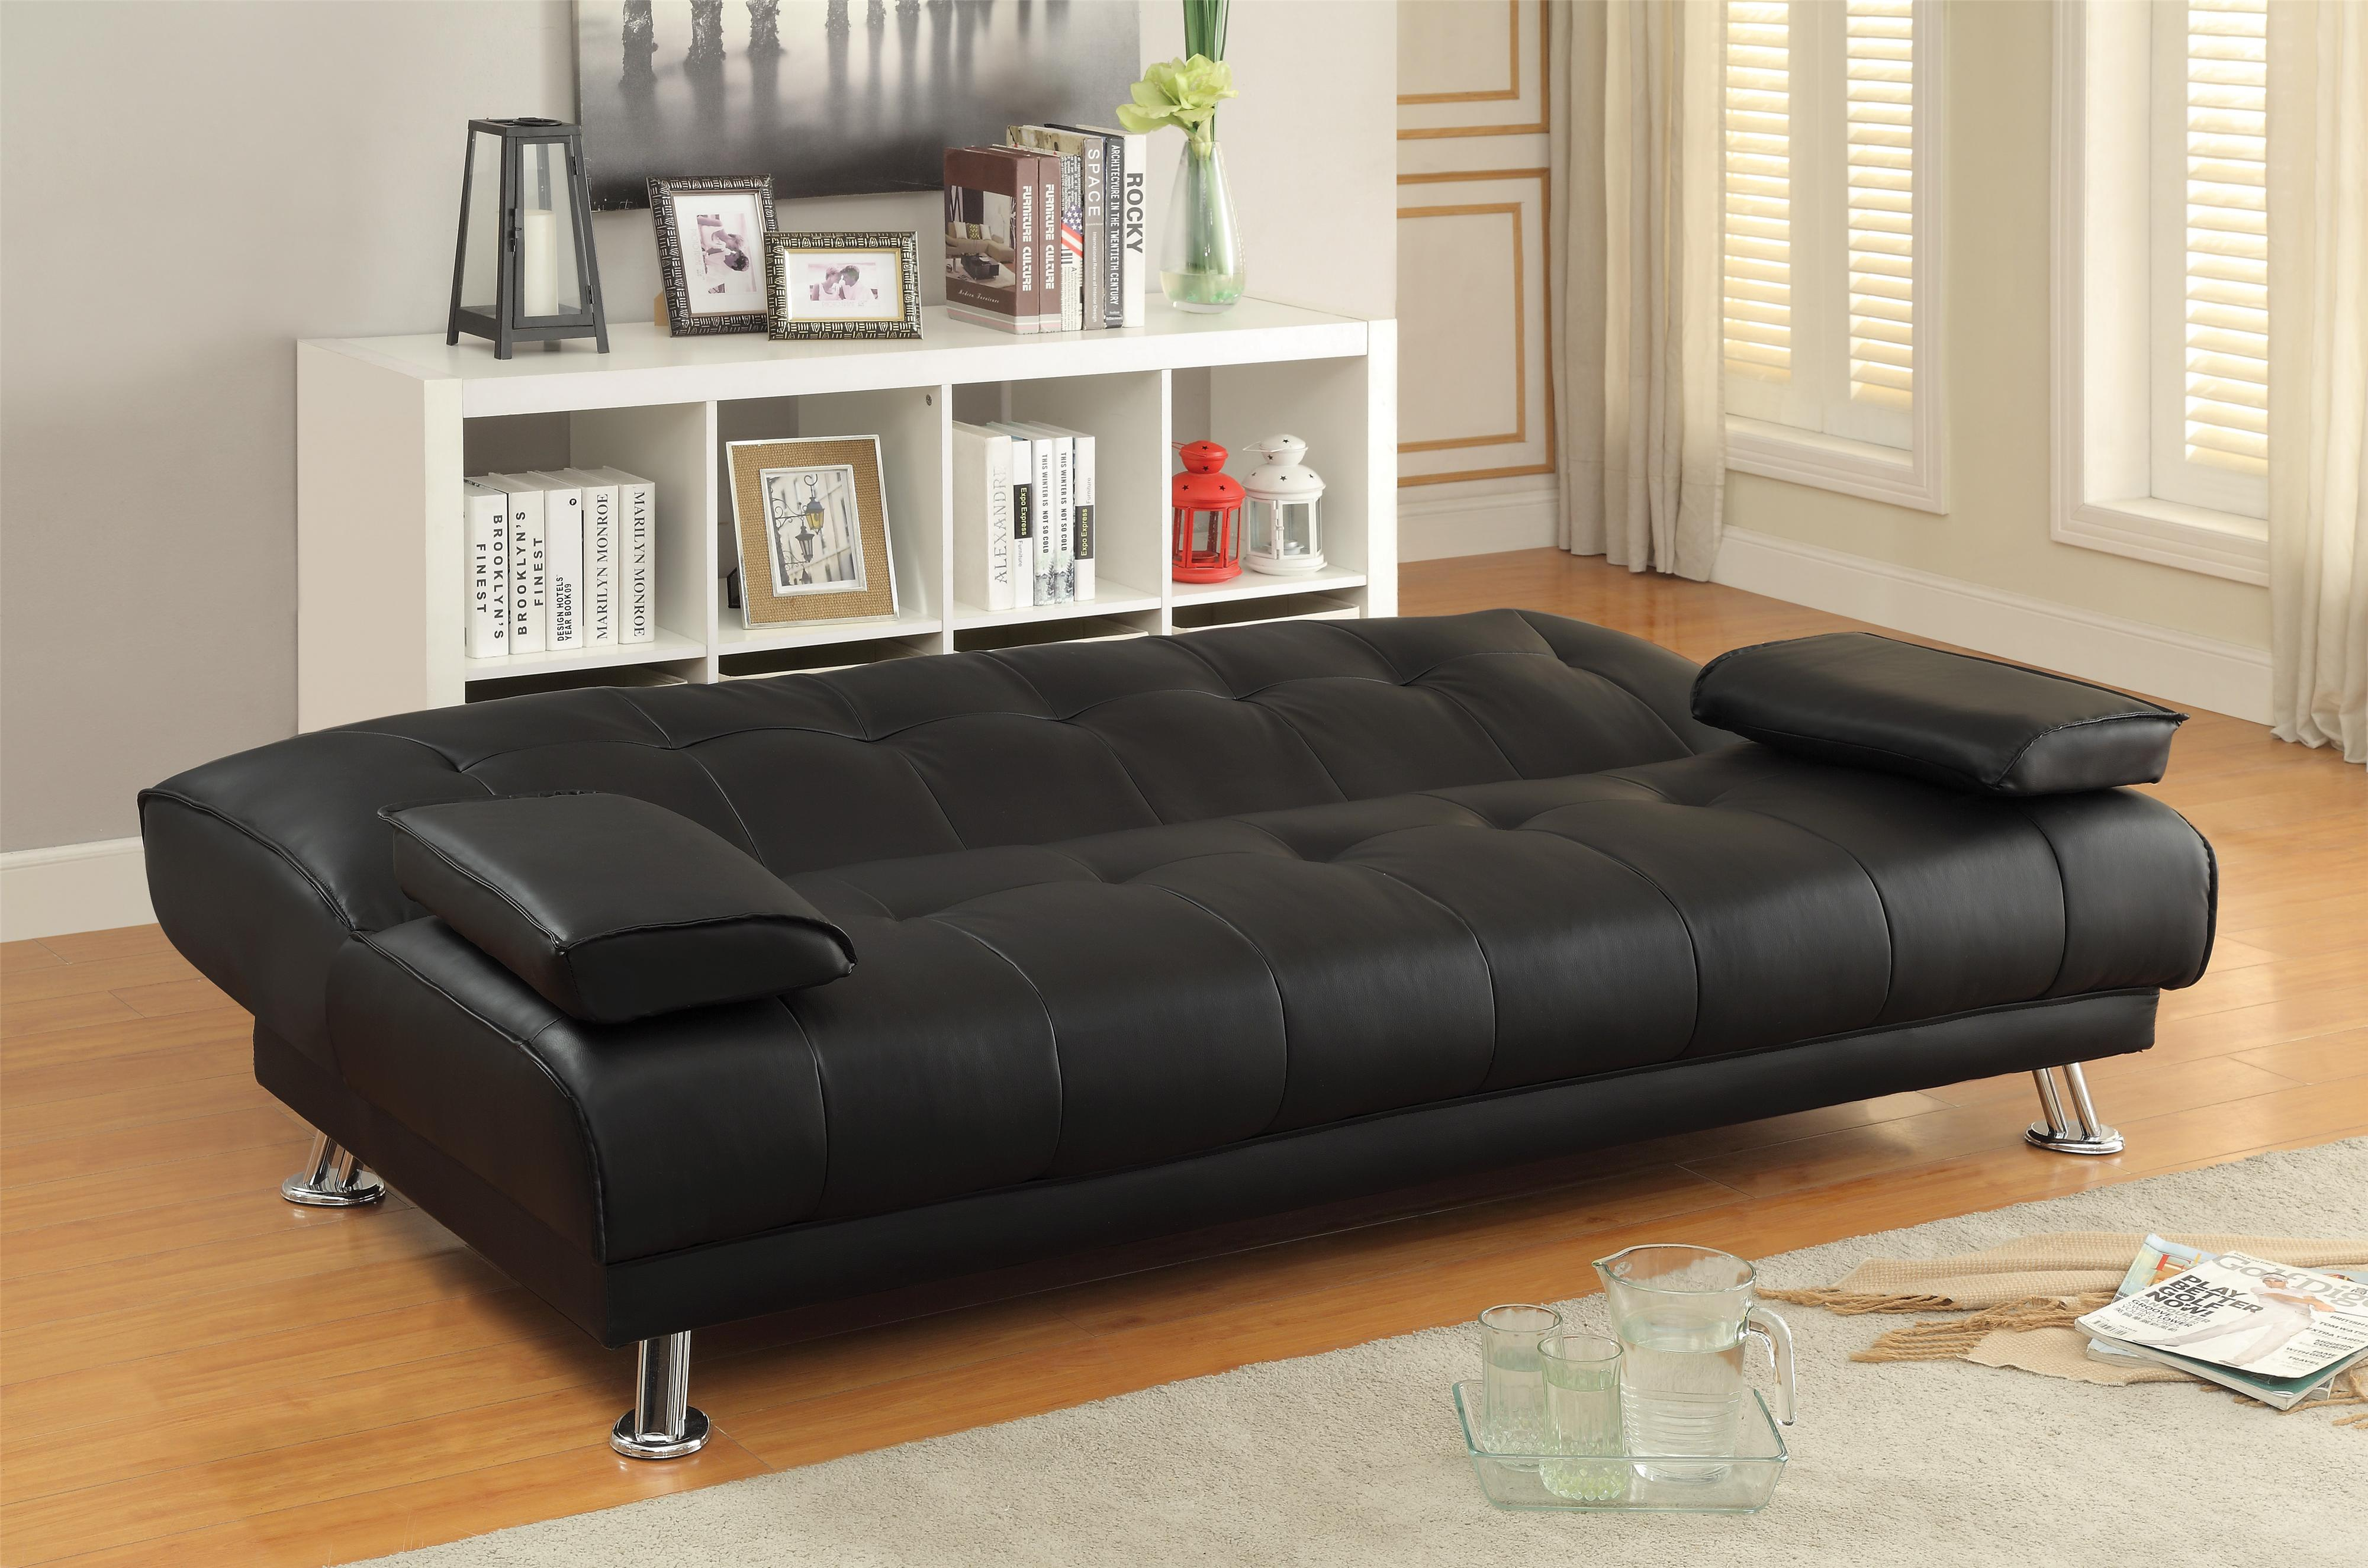 Sofa beds and futons faux leather convertible sofa bed with removable armrests quality Convertible couch bunk bed